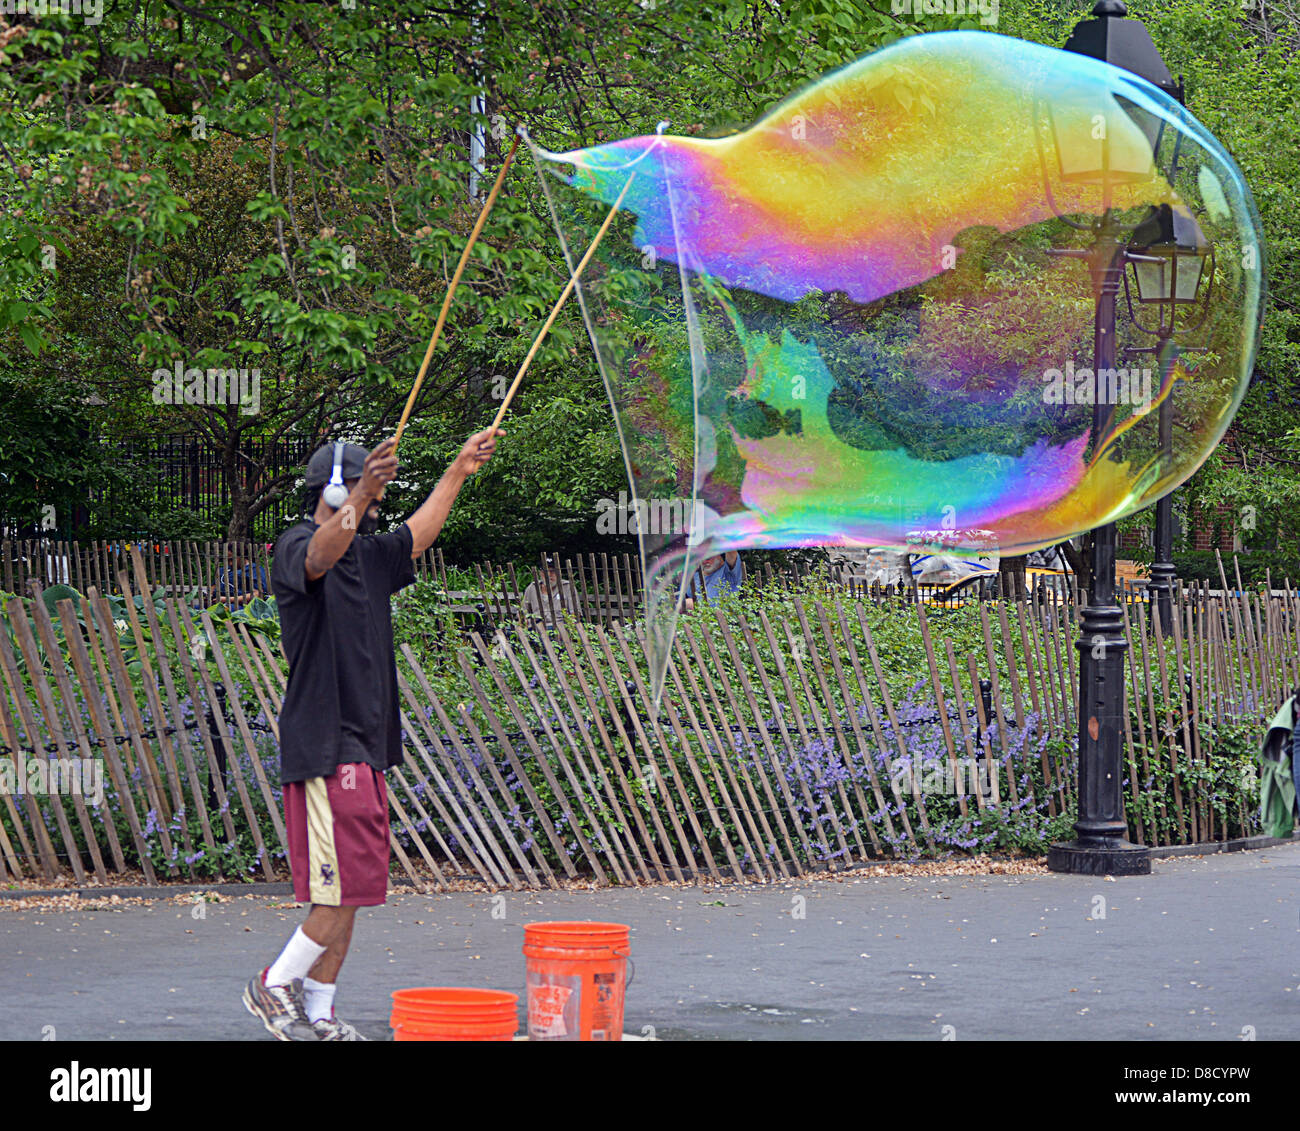 Man in Washington Square Park in New York City blowing large bubbles. - Stock Image